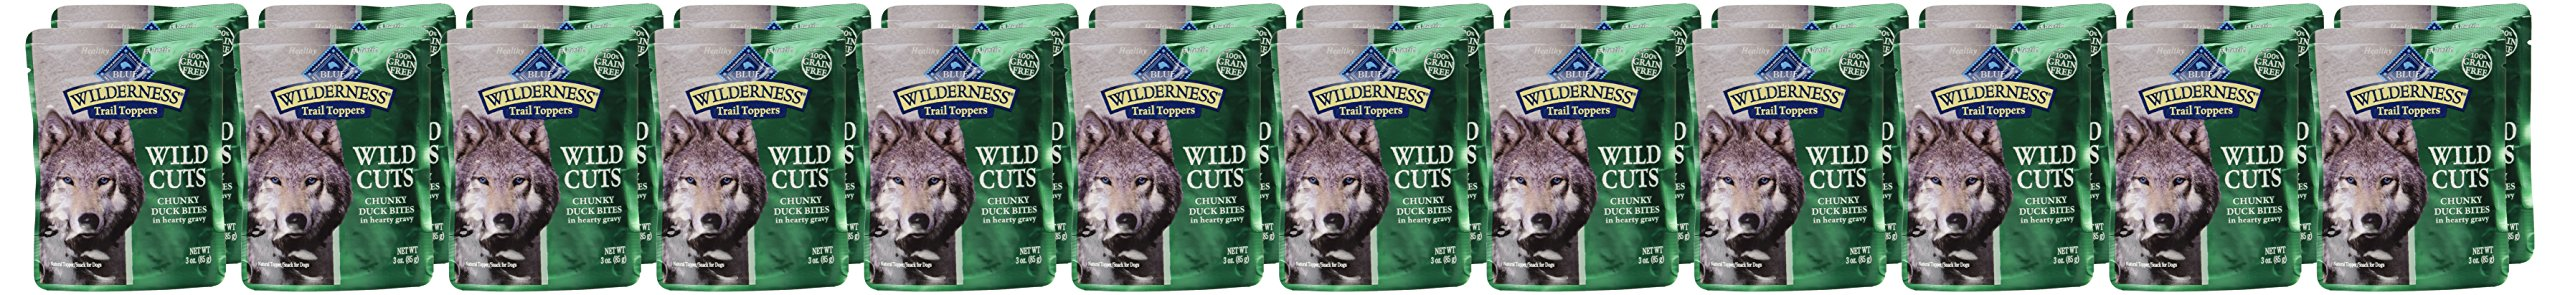 Blue Buffalo Wilderness Trail Toppers Chunky Duck Bites Dog Food, 24 By 3 Oz. by Blue Buffalo